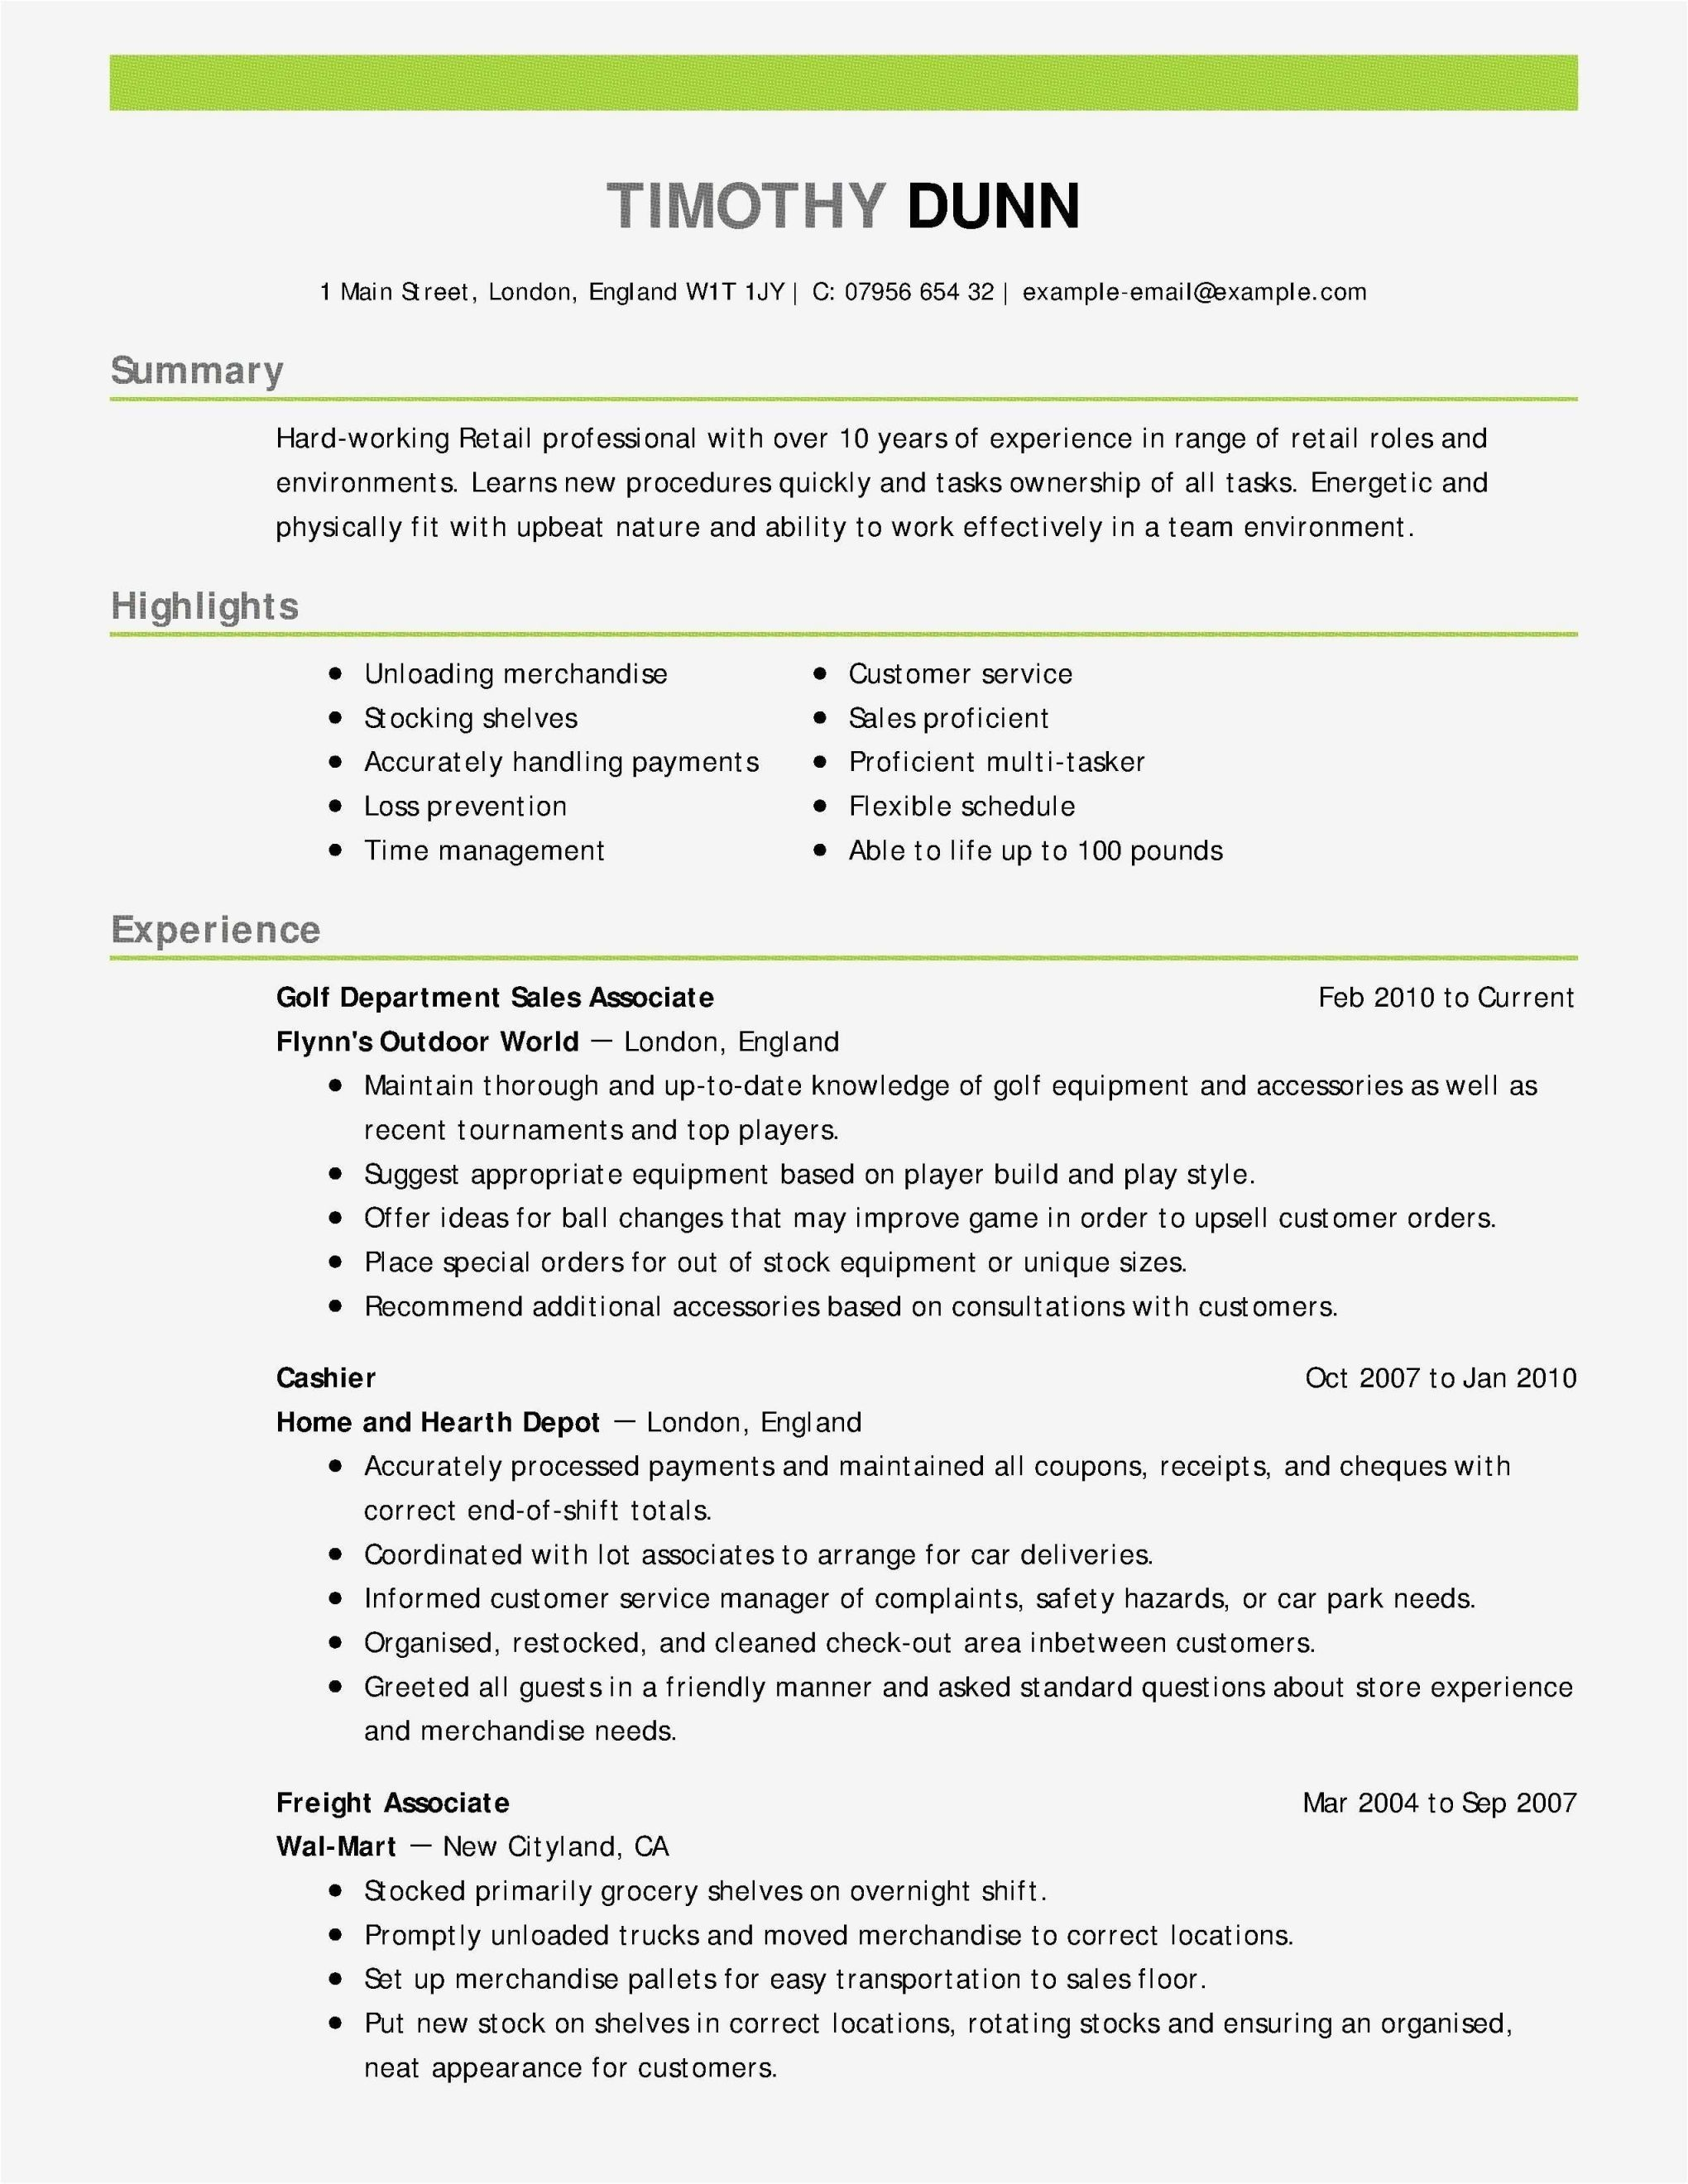 Download Valid Complaints Policy Template For Small Business Can Save At Valid Complaints Policy T Resume Objective Examples Good Resume Examples Resume Skills